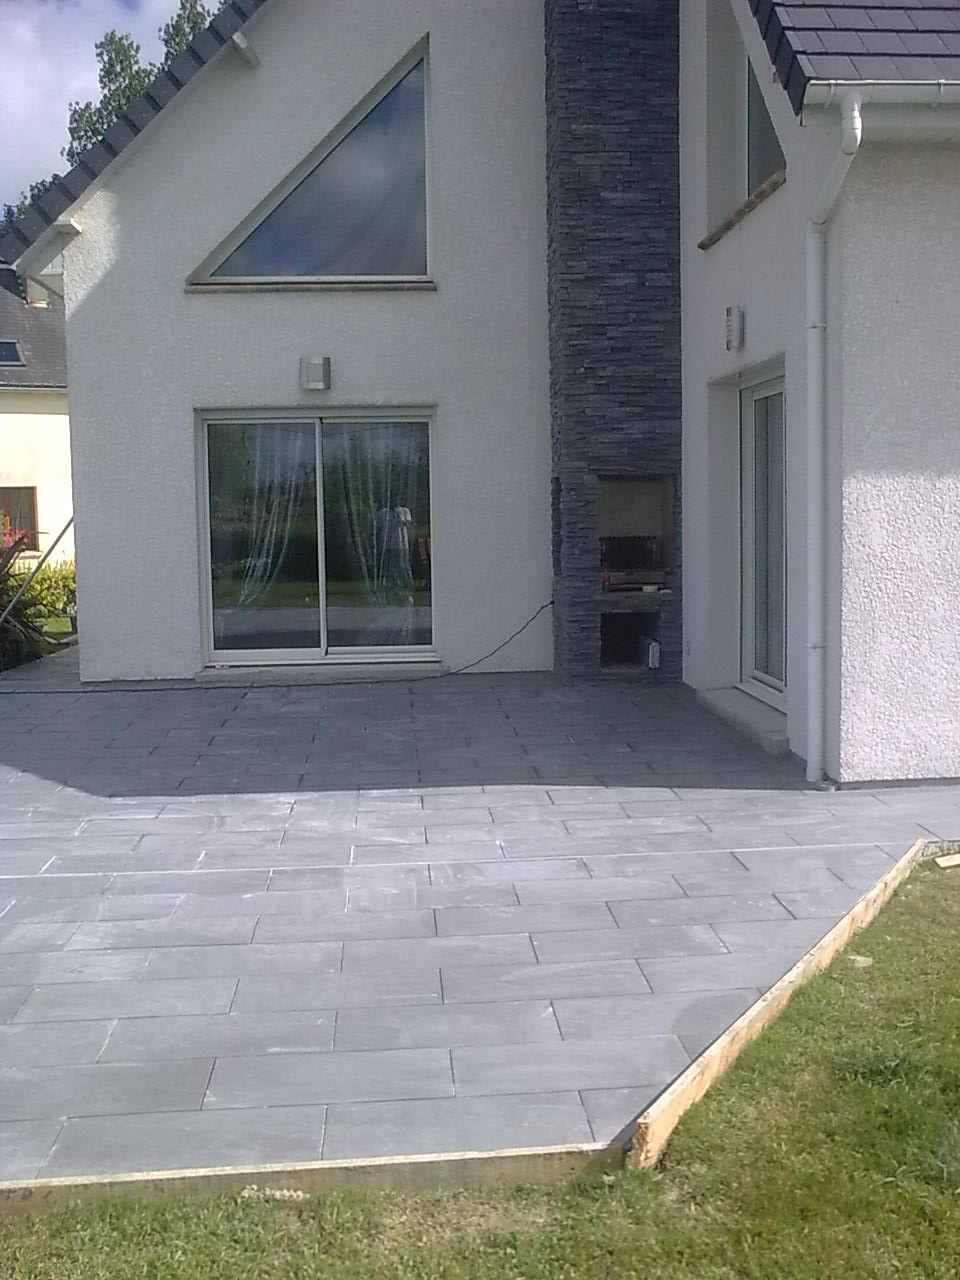 Video refaire joints carrelage devis gratuit travaux for Pose carrelage sol prix m2